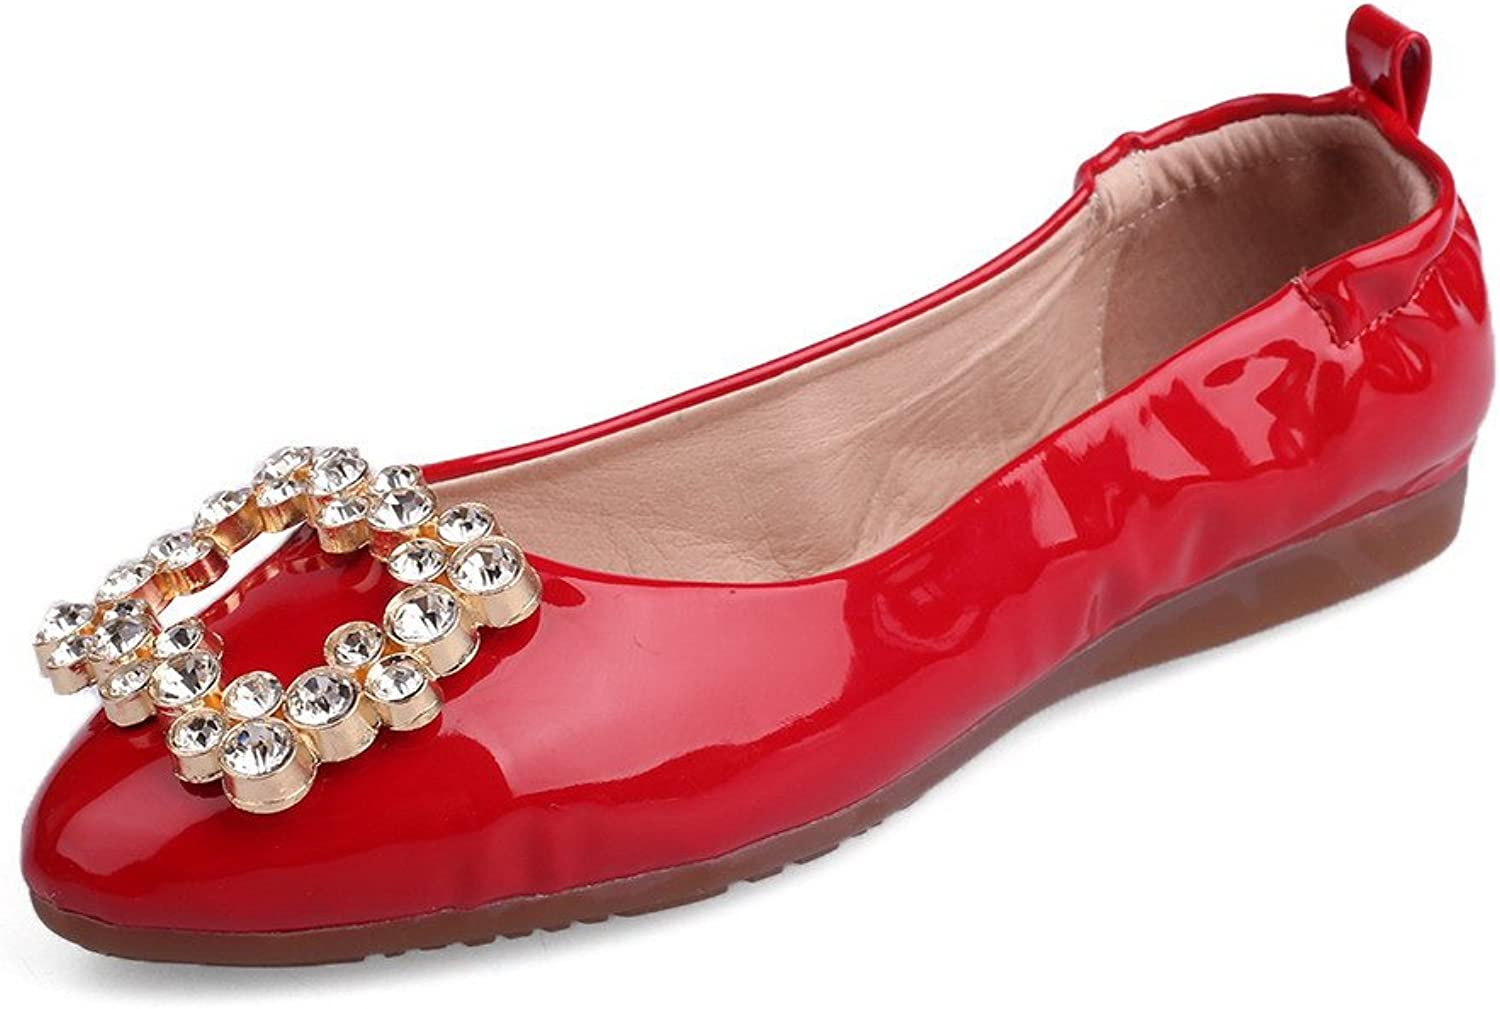 AllhqFashion Women's Patent Leather Solid Pull On Round Closed Toe No Heel Flats-shoes